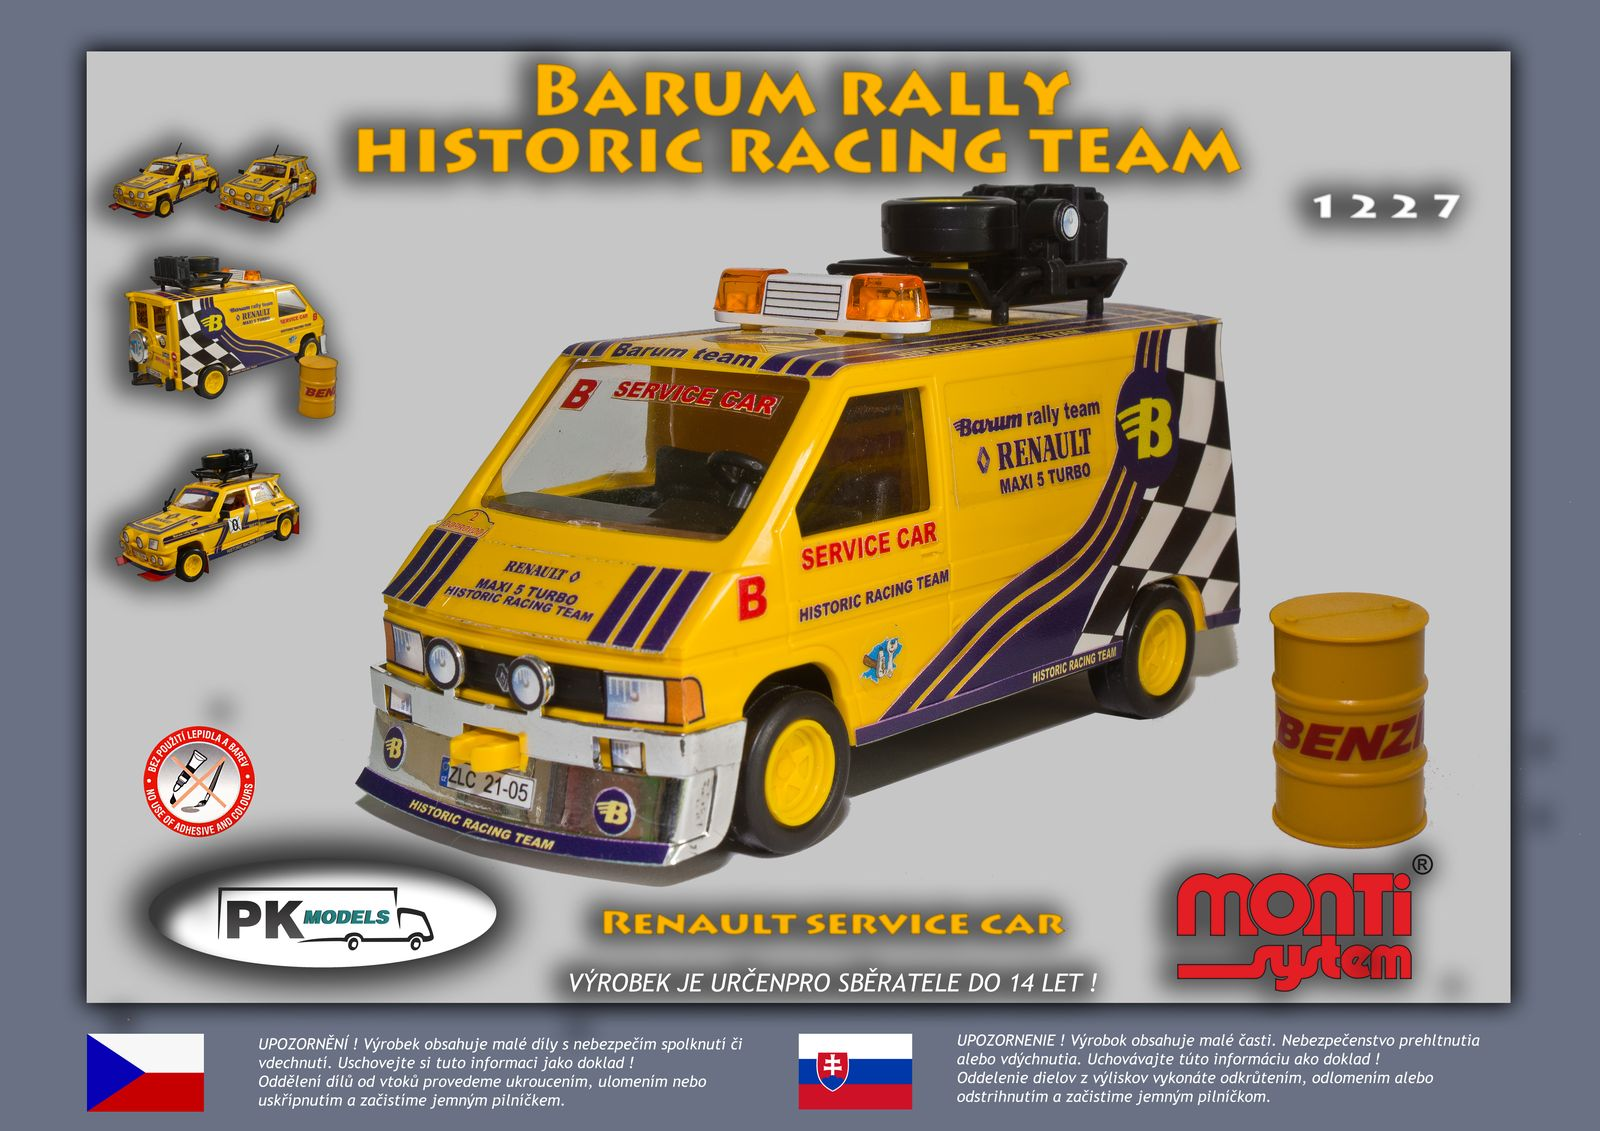 Renault service car Barum rally historic racing